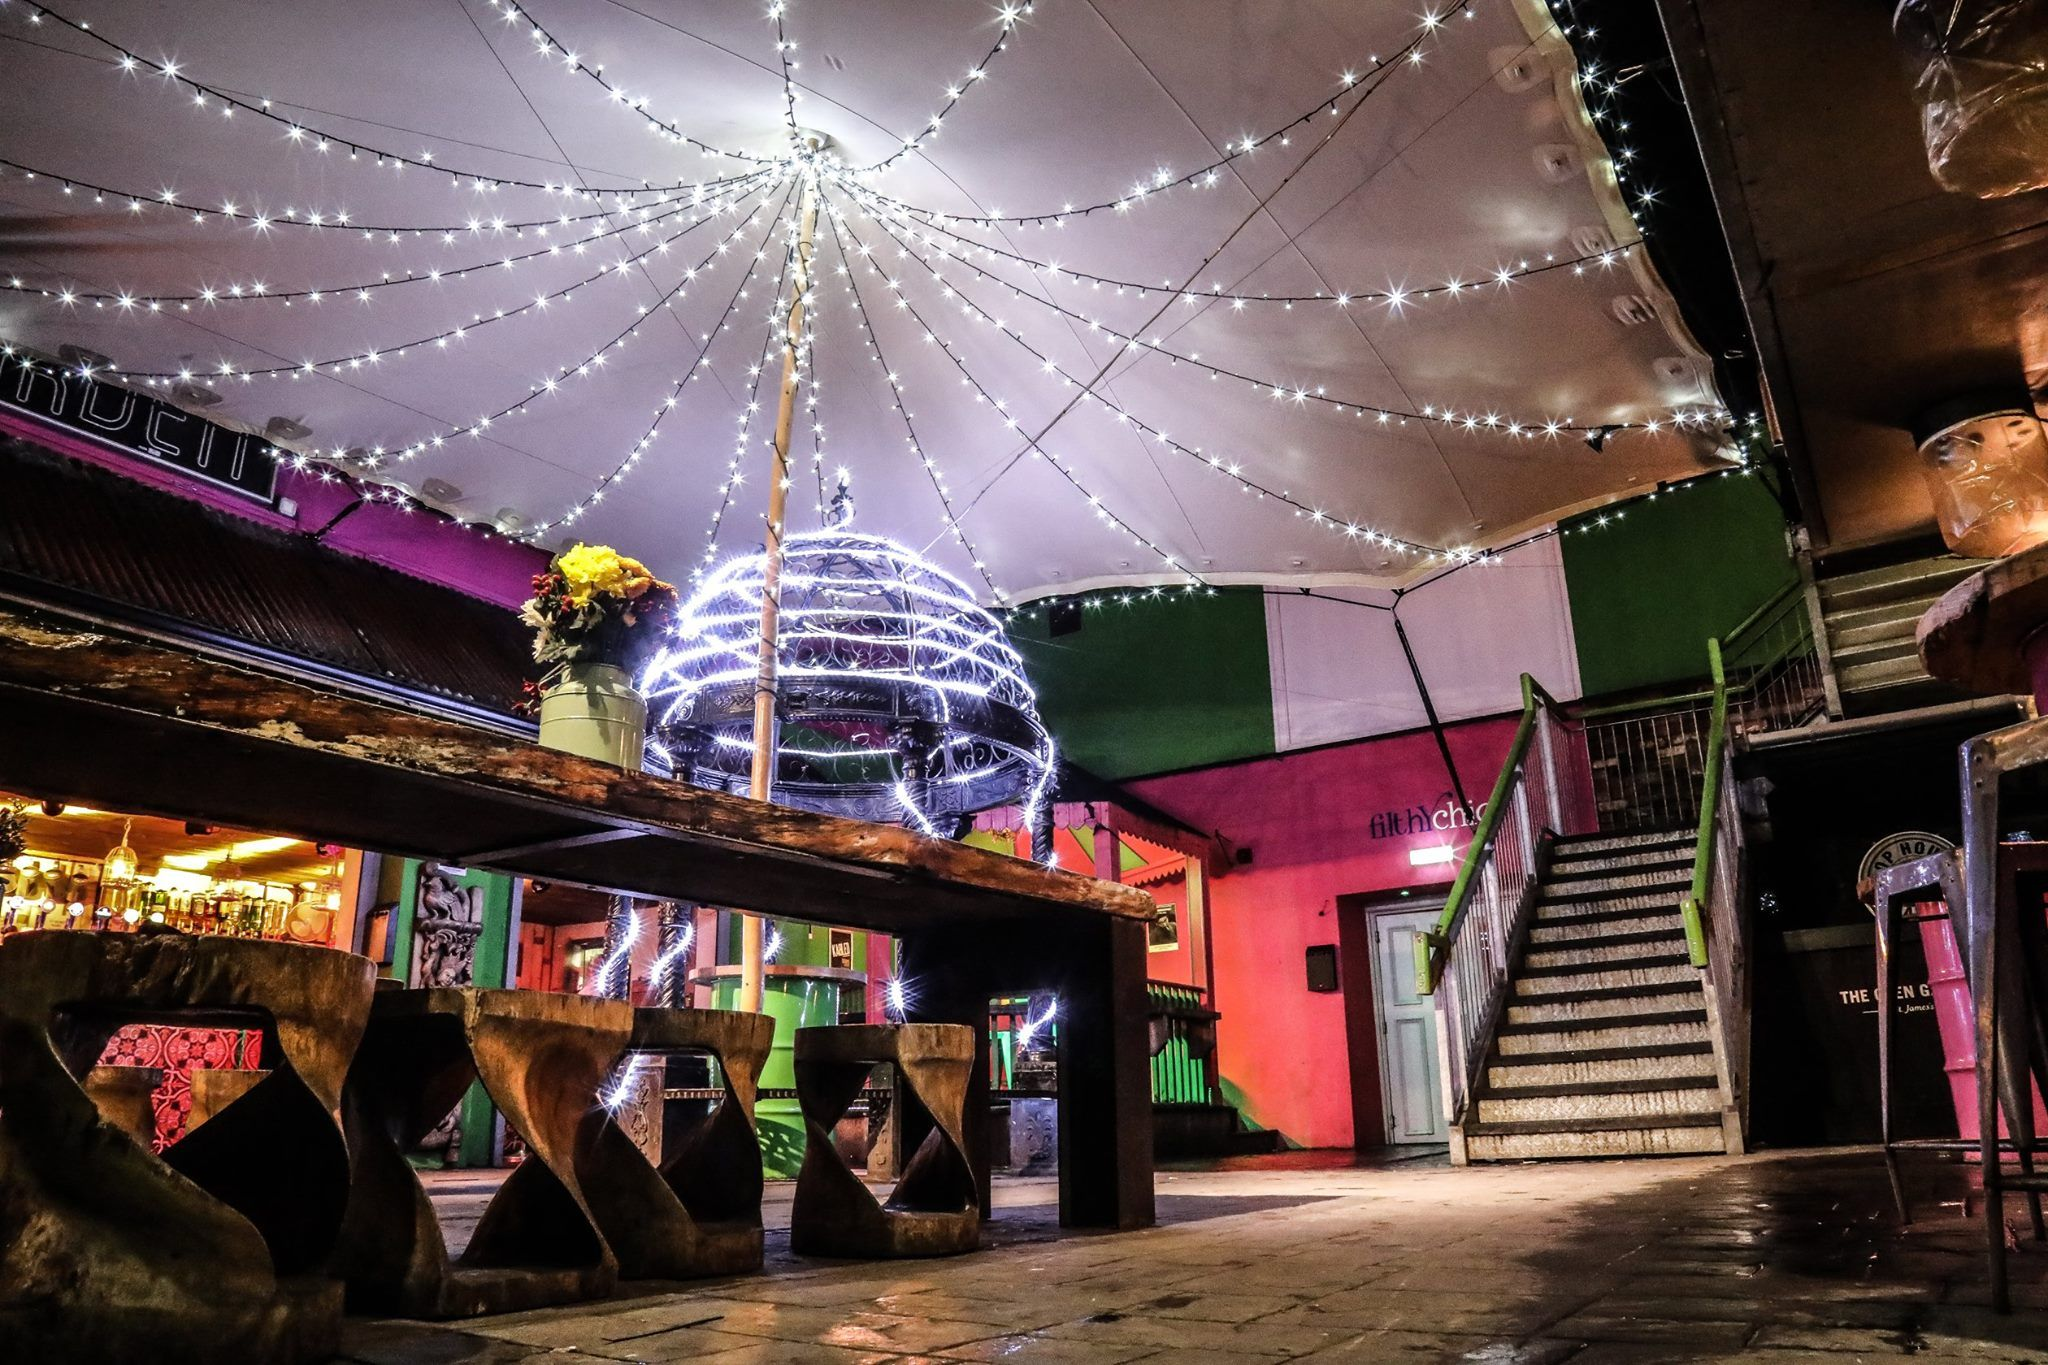 Biege Stretch Canopy used as Beer Garden cover at Filthy McNastysu0027 Bar Belfast. & 10m x7.5m Biege Stretch Canopy used as Beer Garden cover at Filthy ...